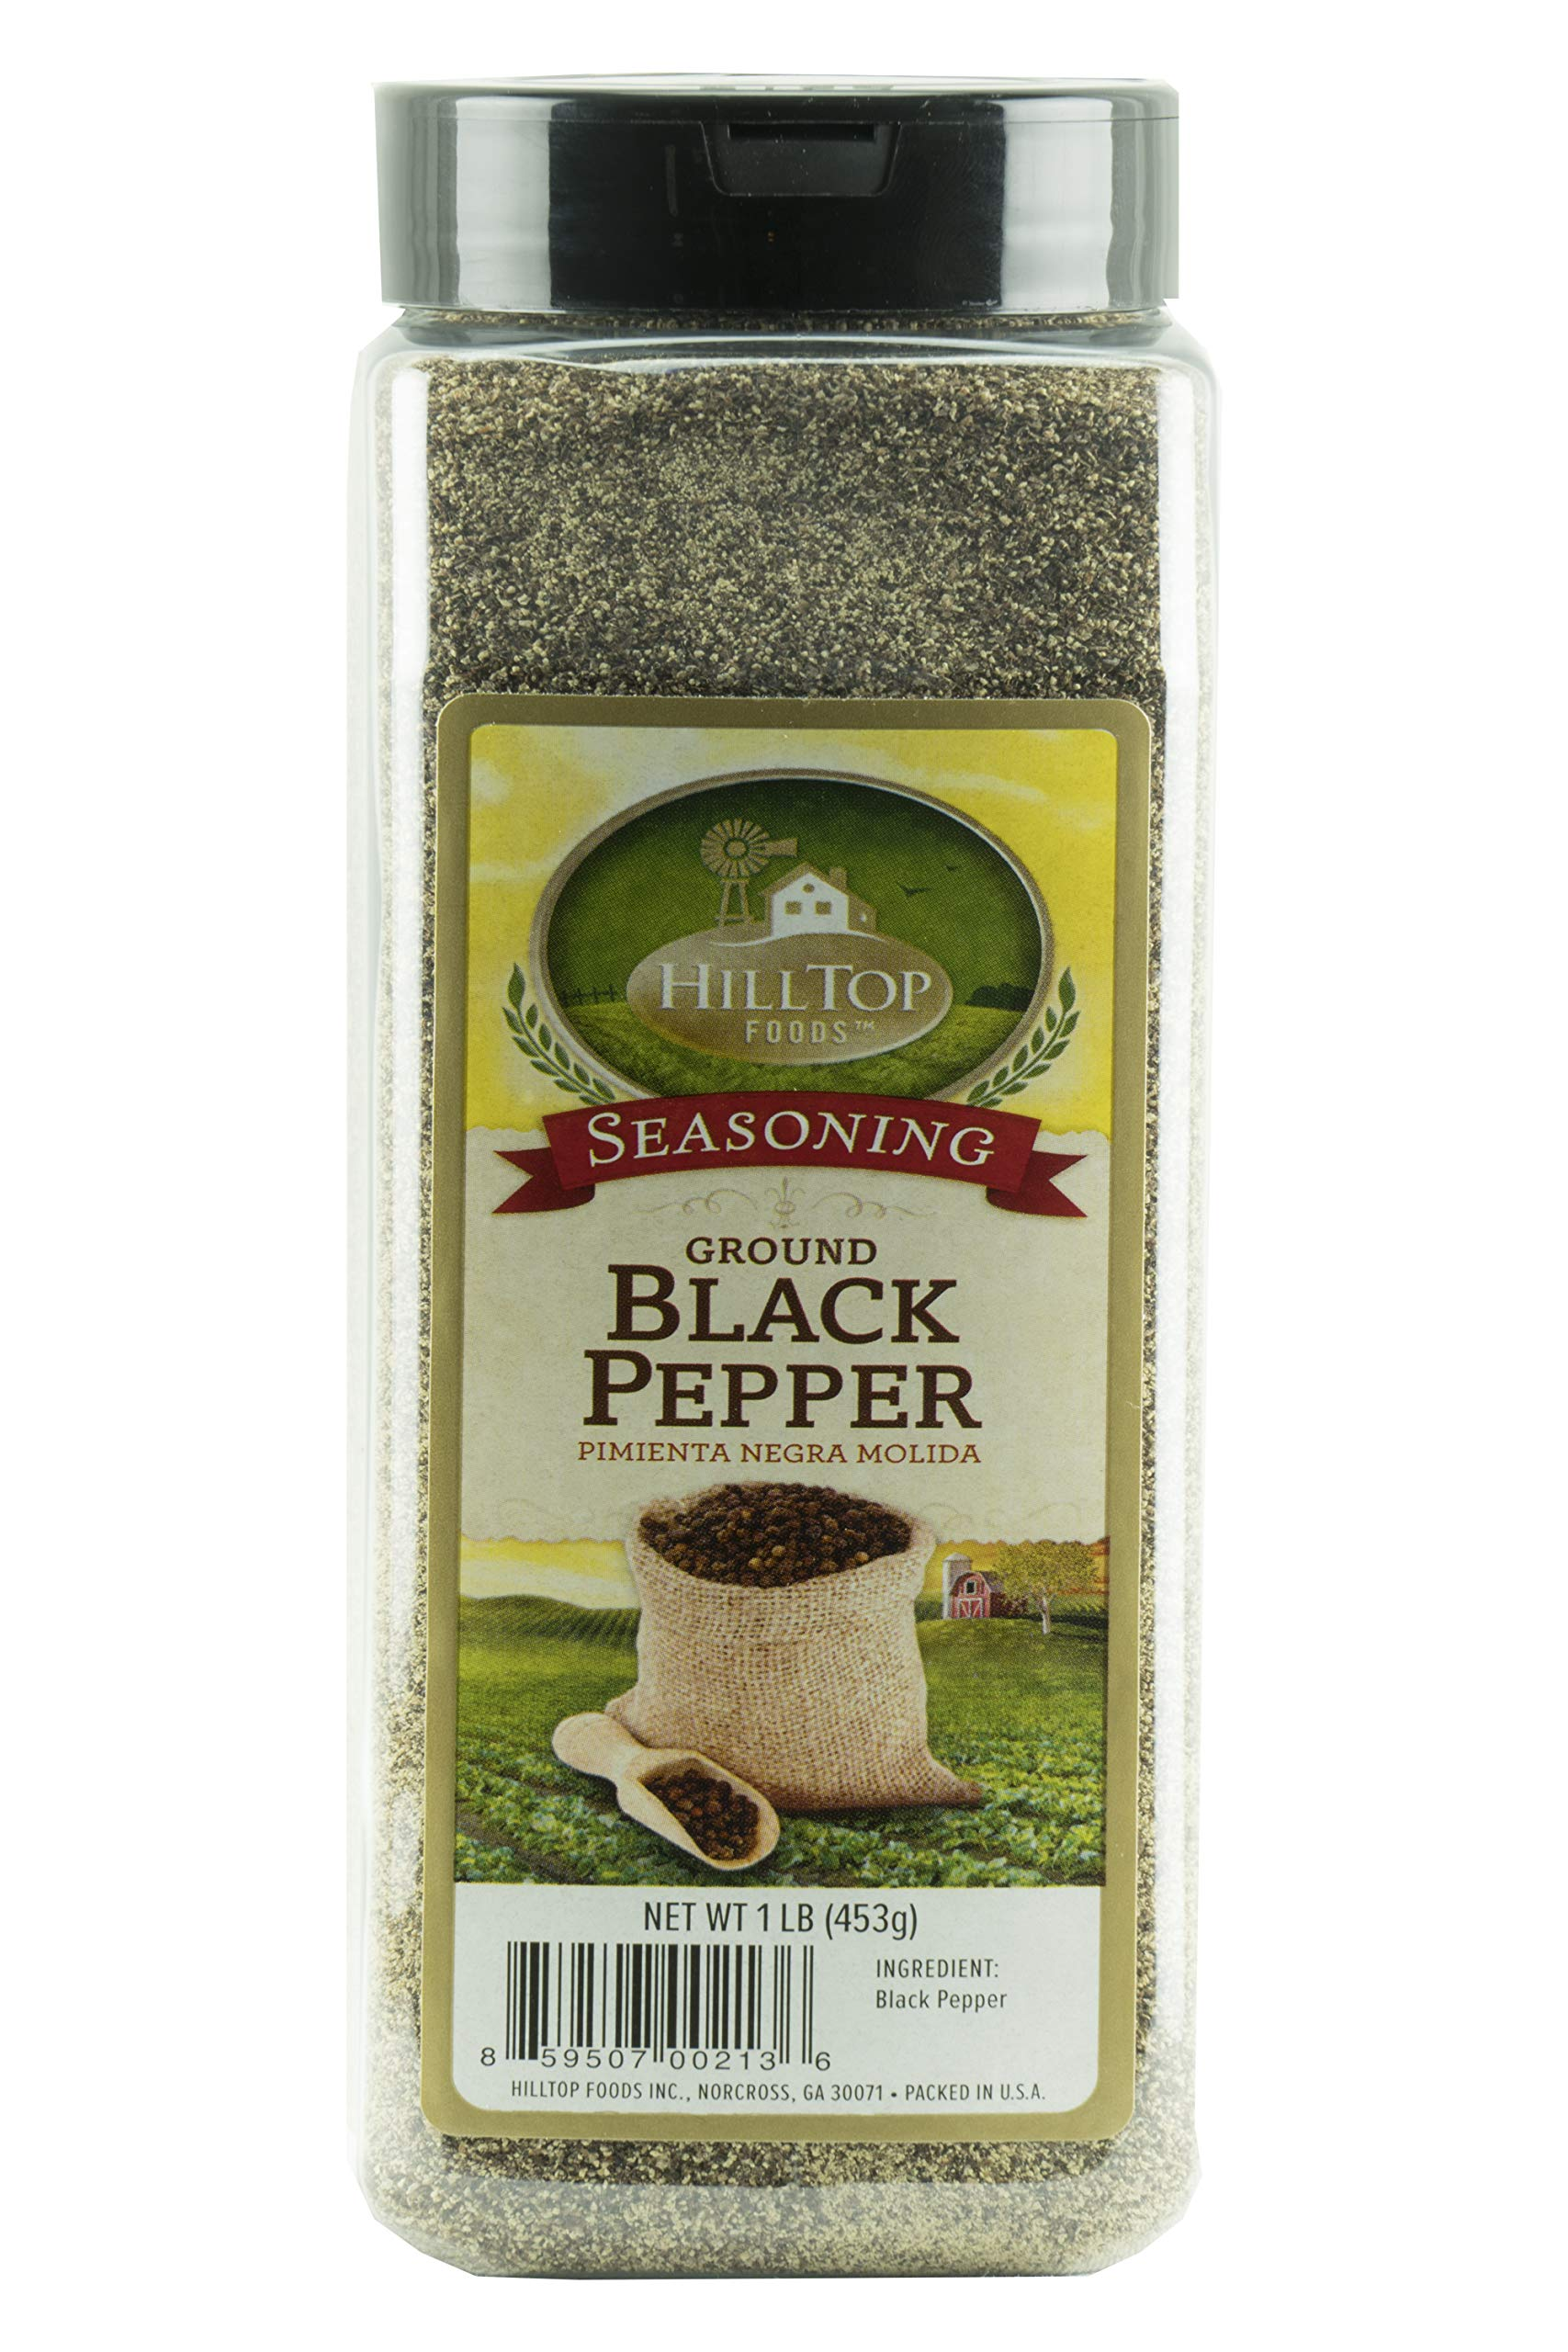 Hilltop Foods Ground Black Pepper-Natural Powder 1 Lb. Container by HillTop Foods Inc. (Image #2)